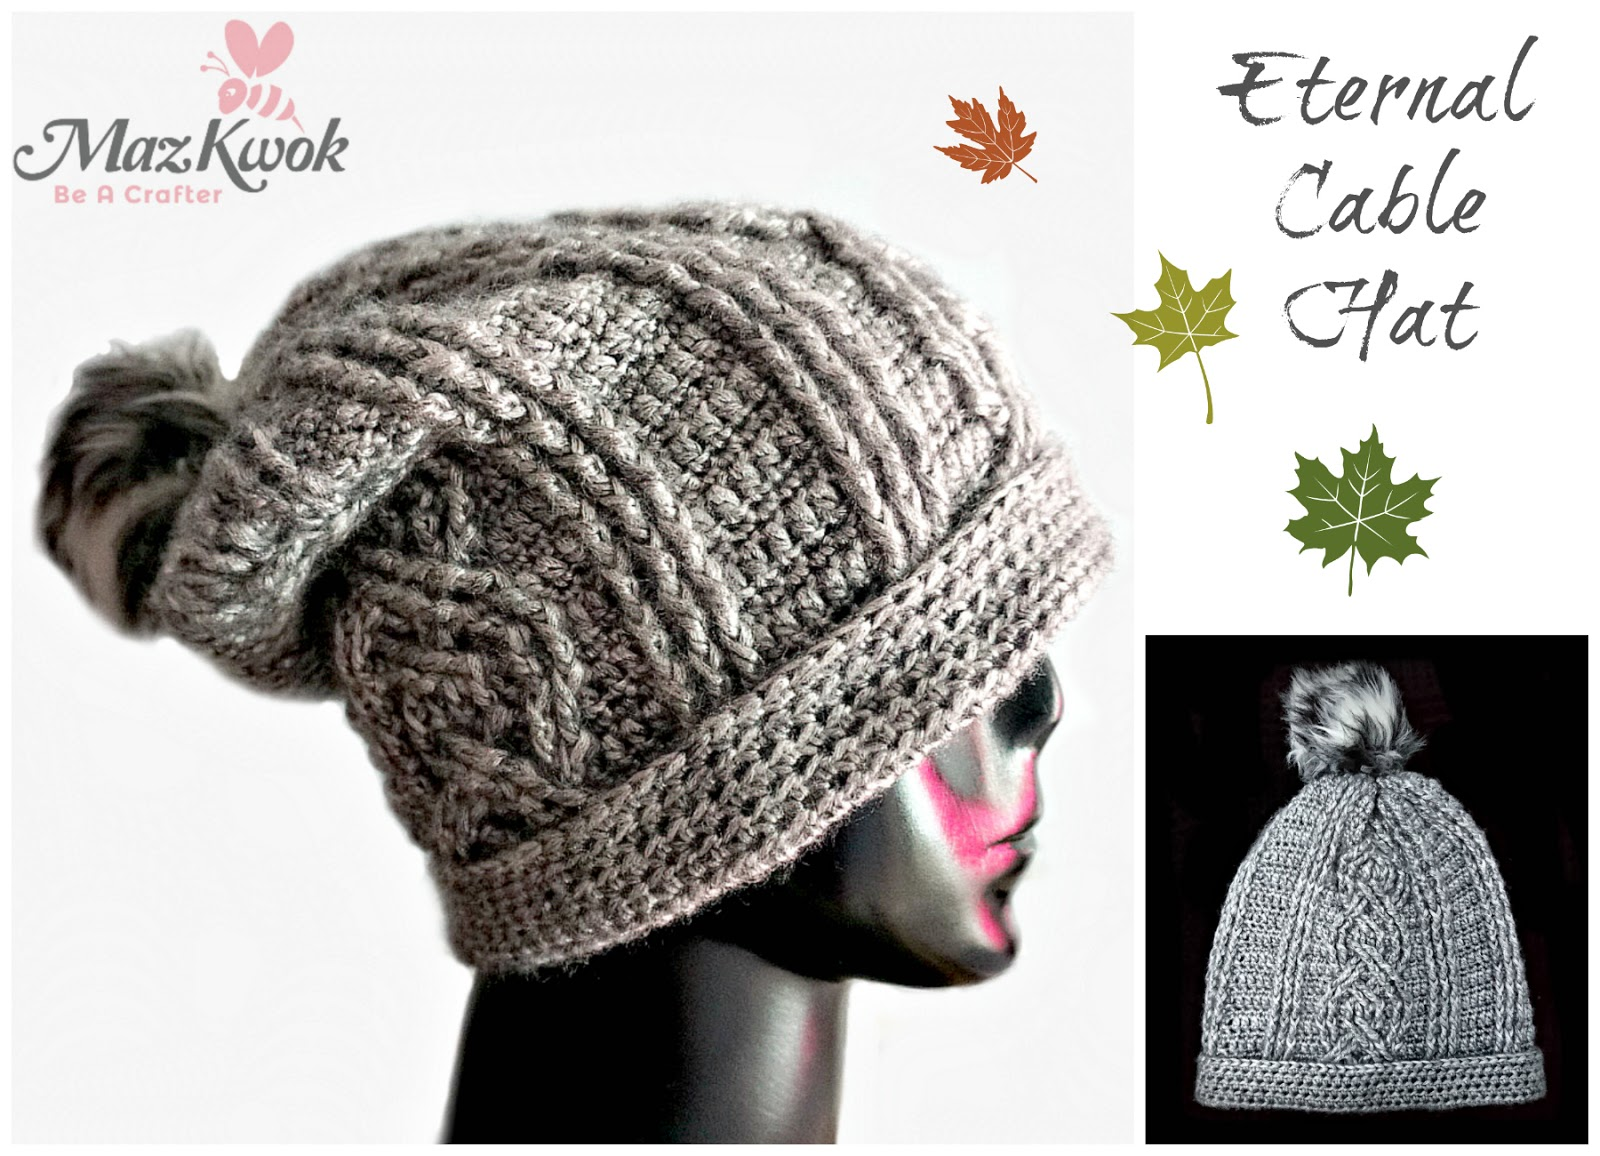 Eternal Cable Hat - free crochet pattern 53a94ca897